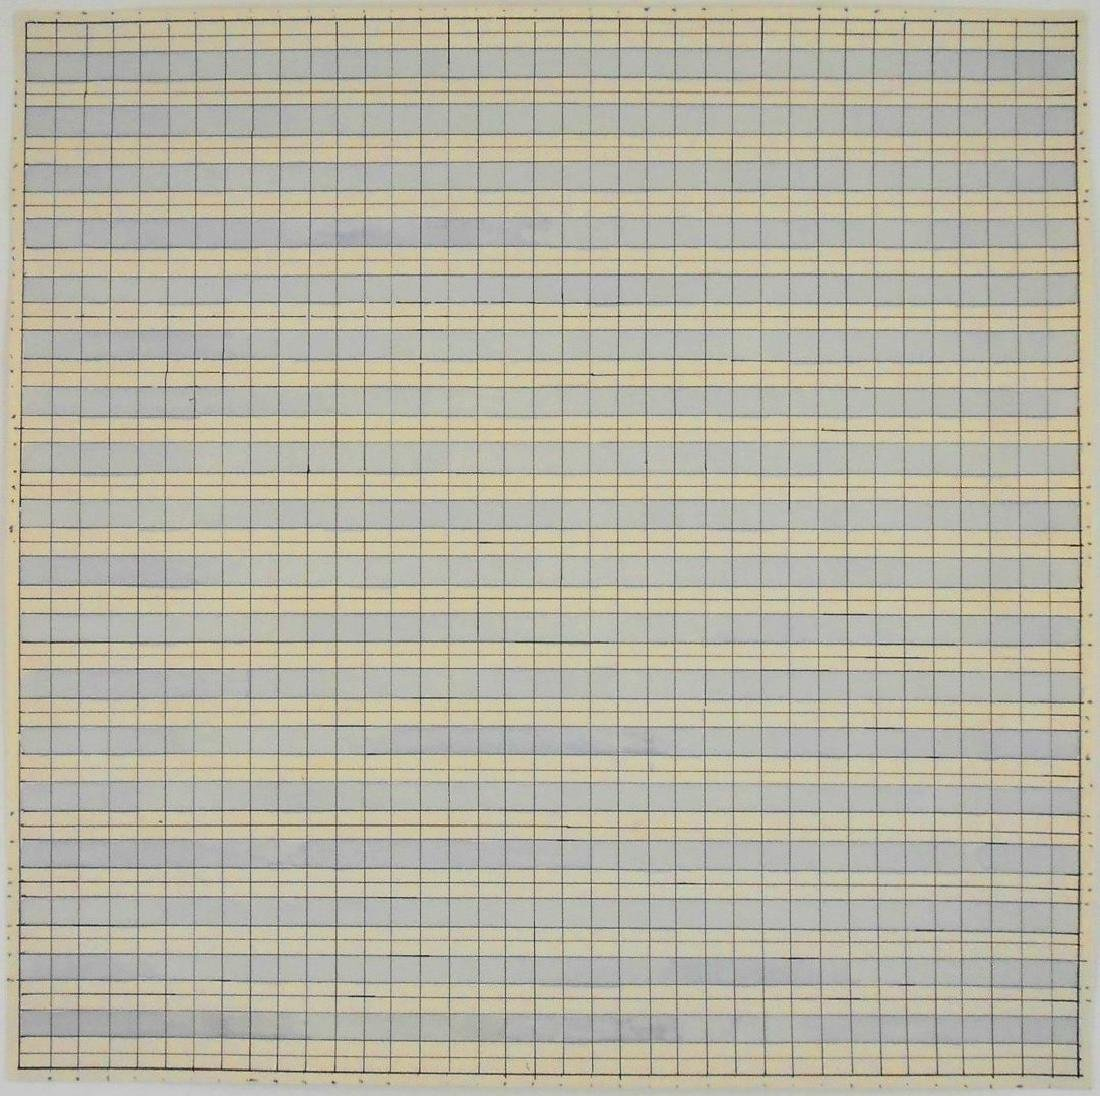 Agnes Martin (1912-2004) Ink & Watercolor